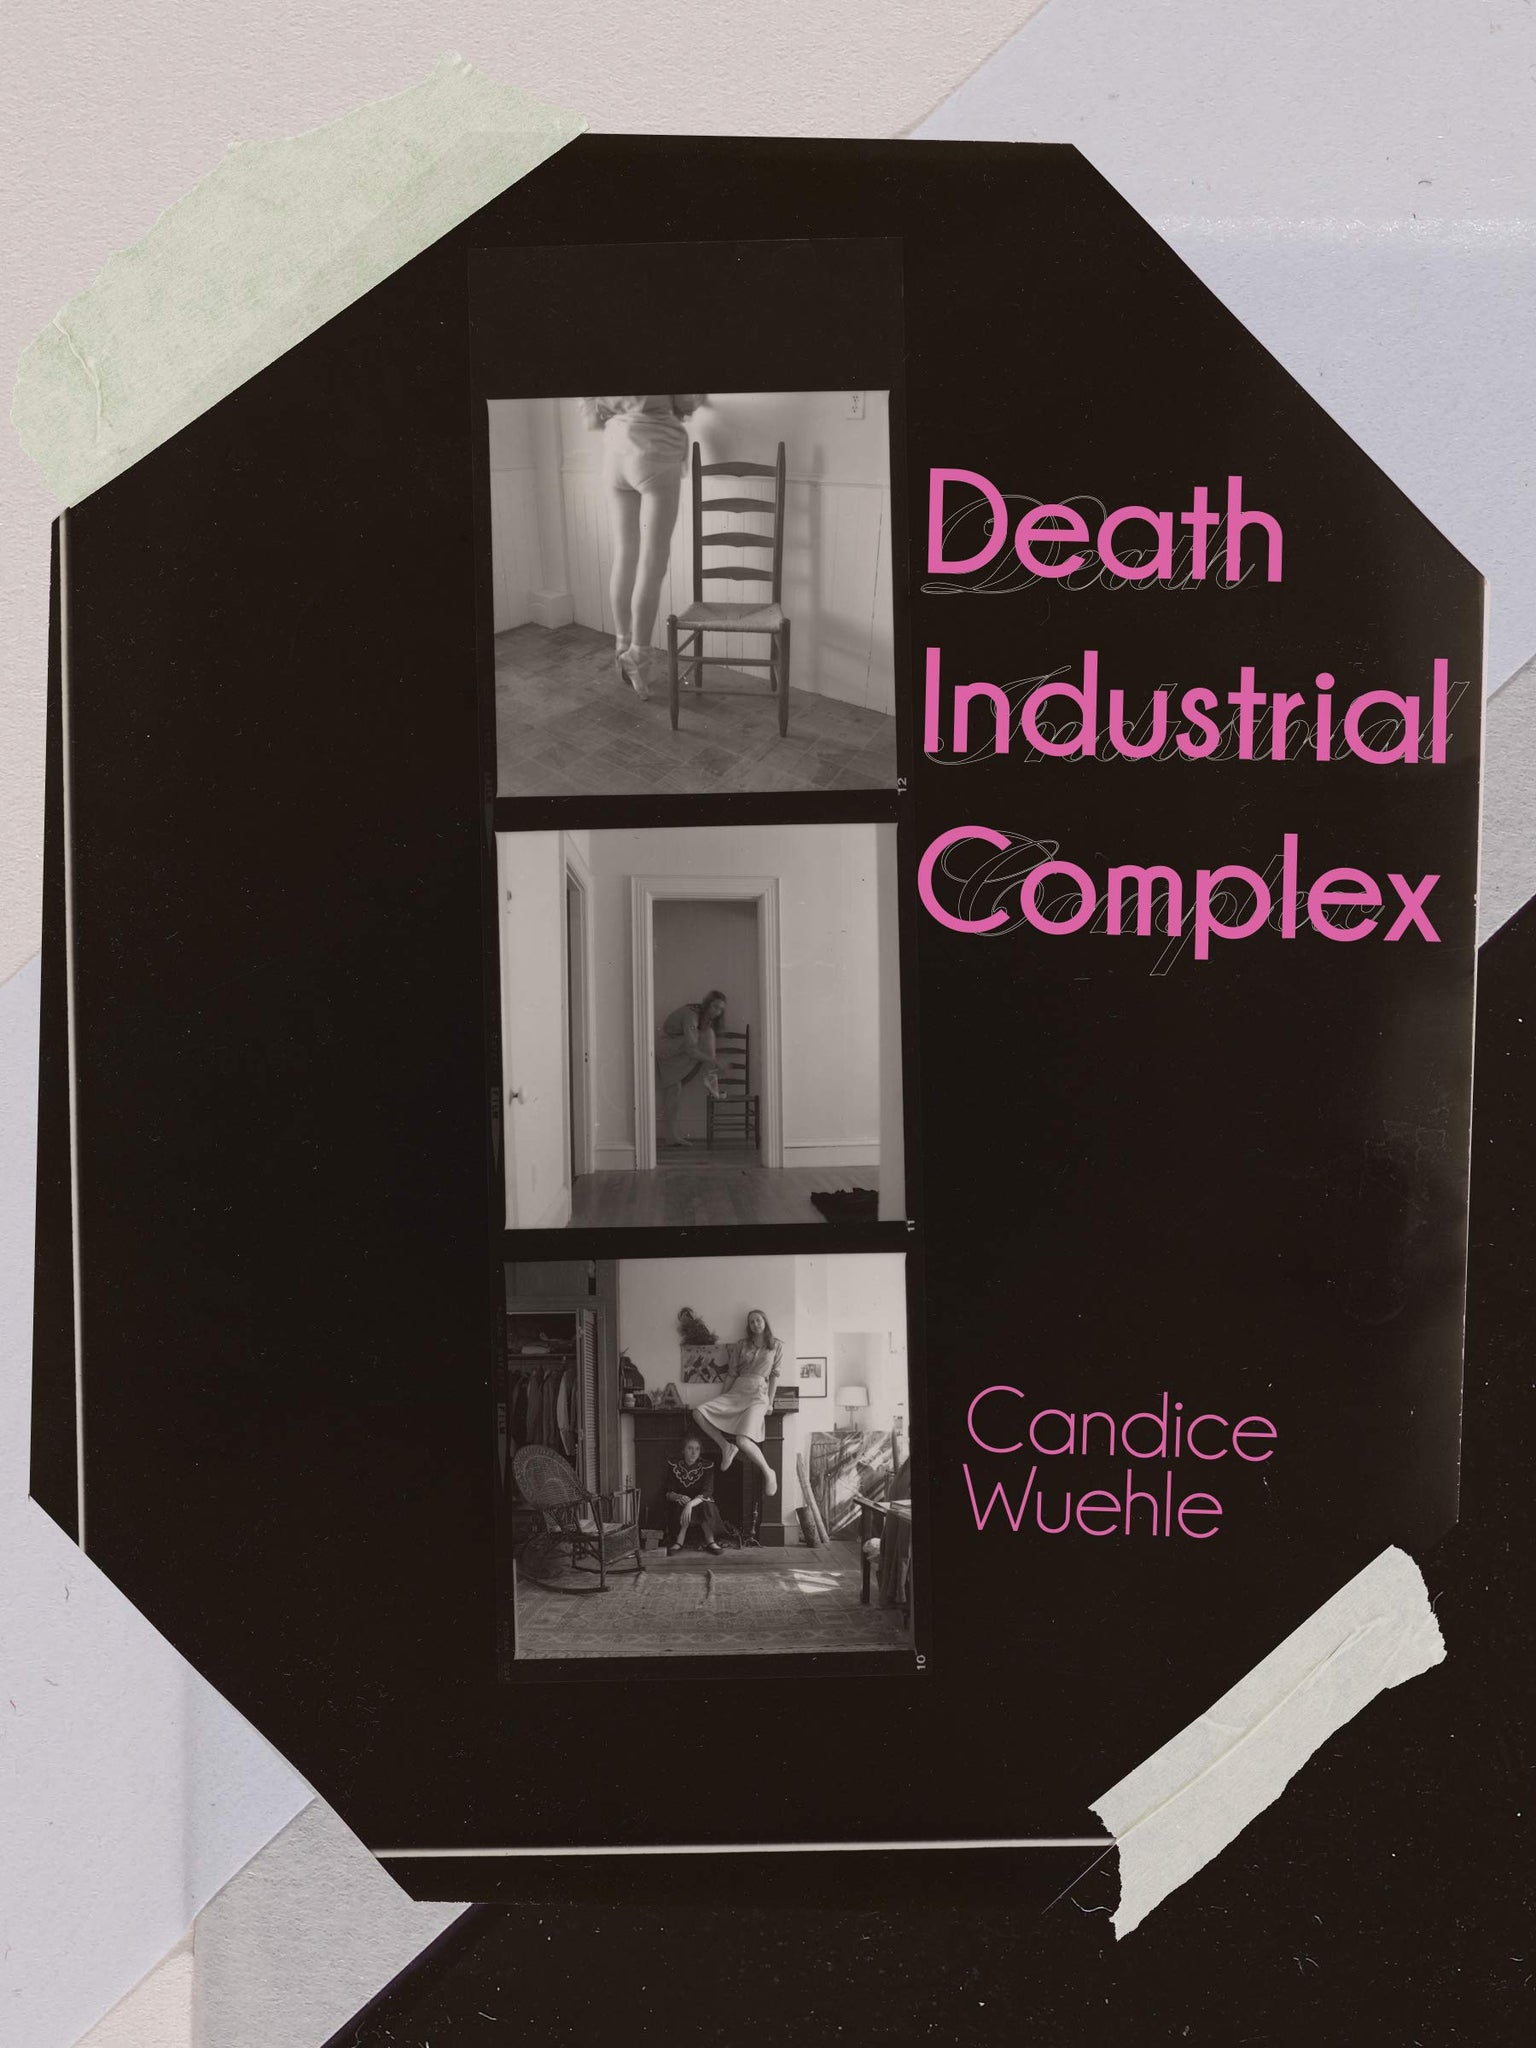 Death Industrial Complex